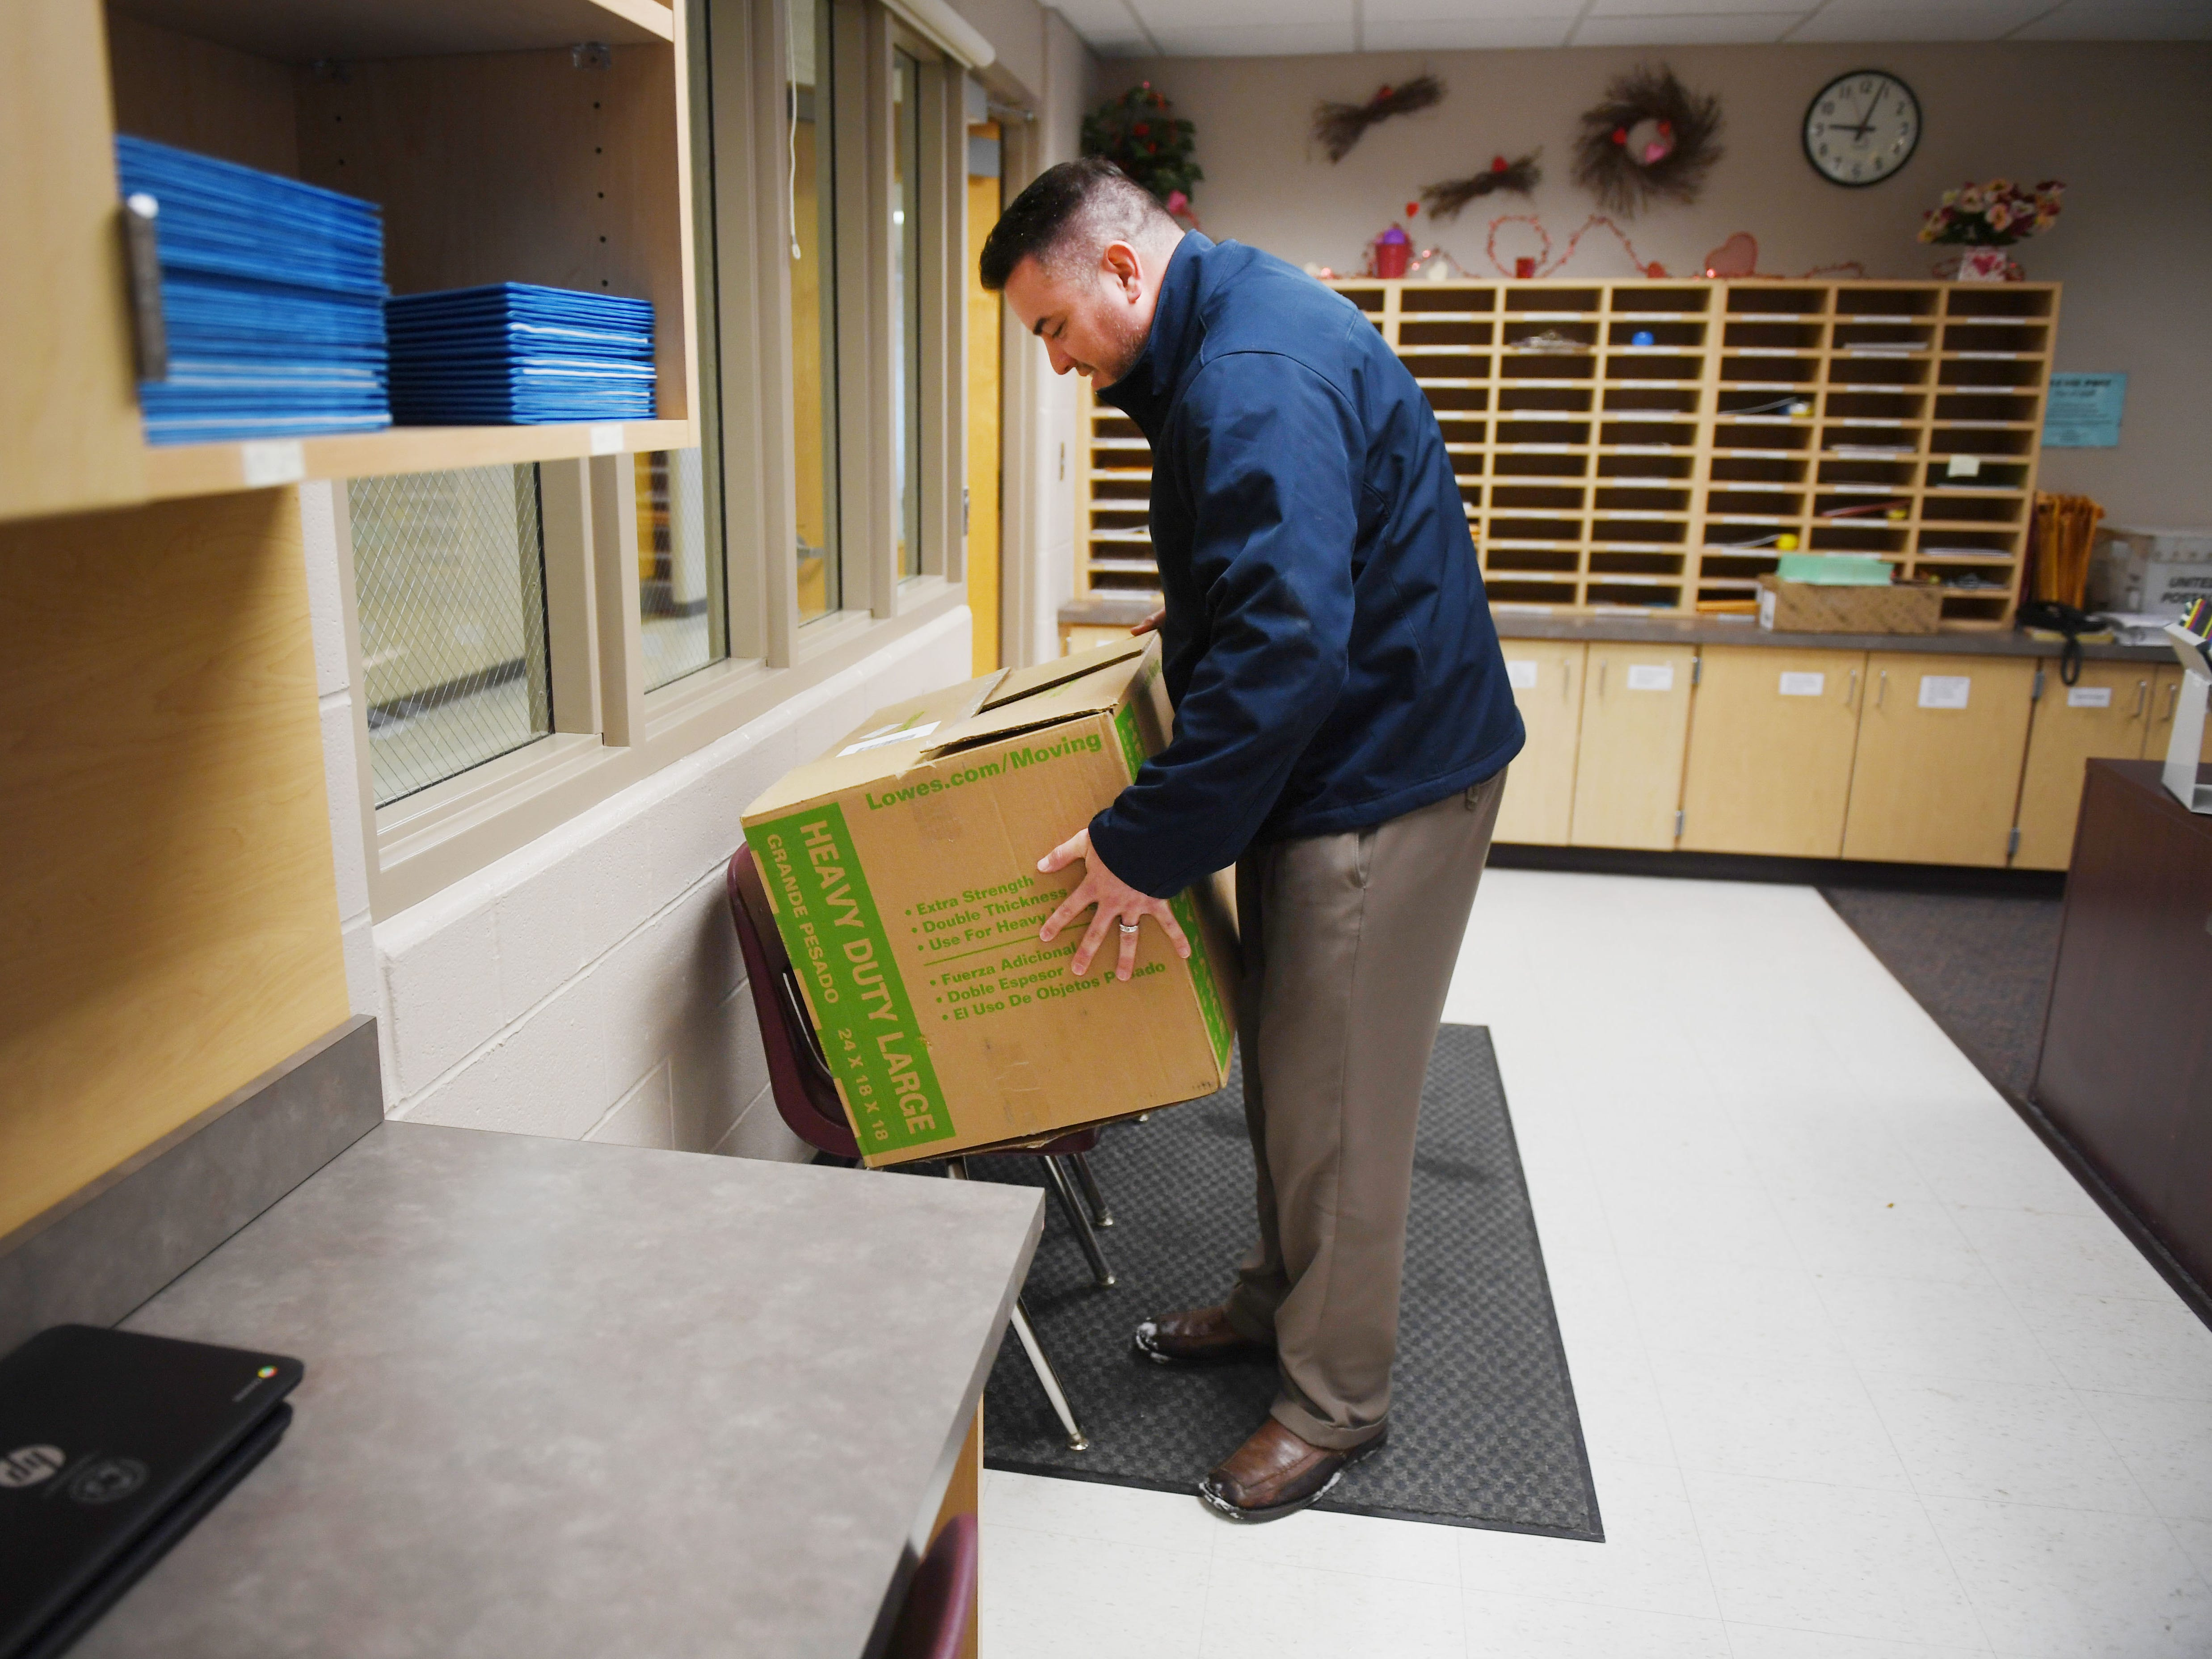 Tony Martinet, Sioux Falls Education Association President, delivers a Little Free Library to Cleveland Elementary School Friday, March 1, in Sioux Falls. Martinet went to six elementary schools to drop of the Little Free Libraries. He said they have a total of 10 Little Free Libraries they want to give to schools. Four of the libraries are still available.